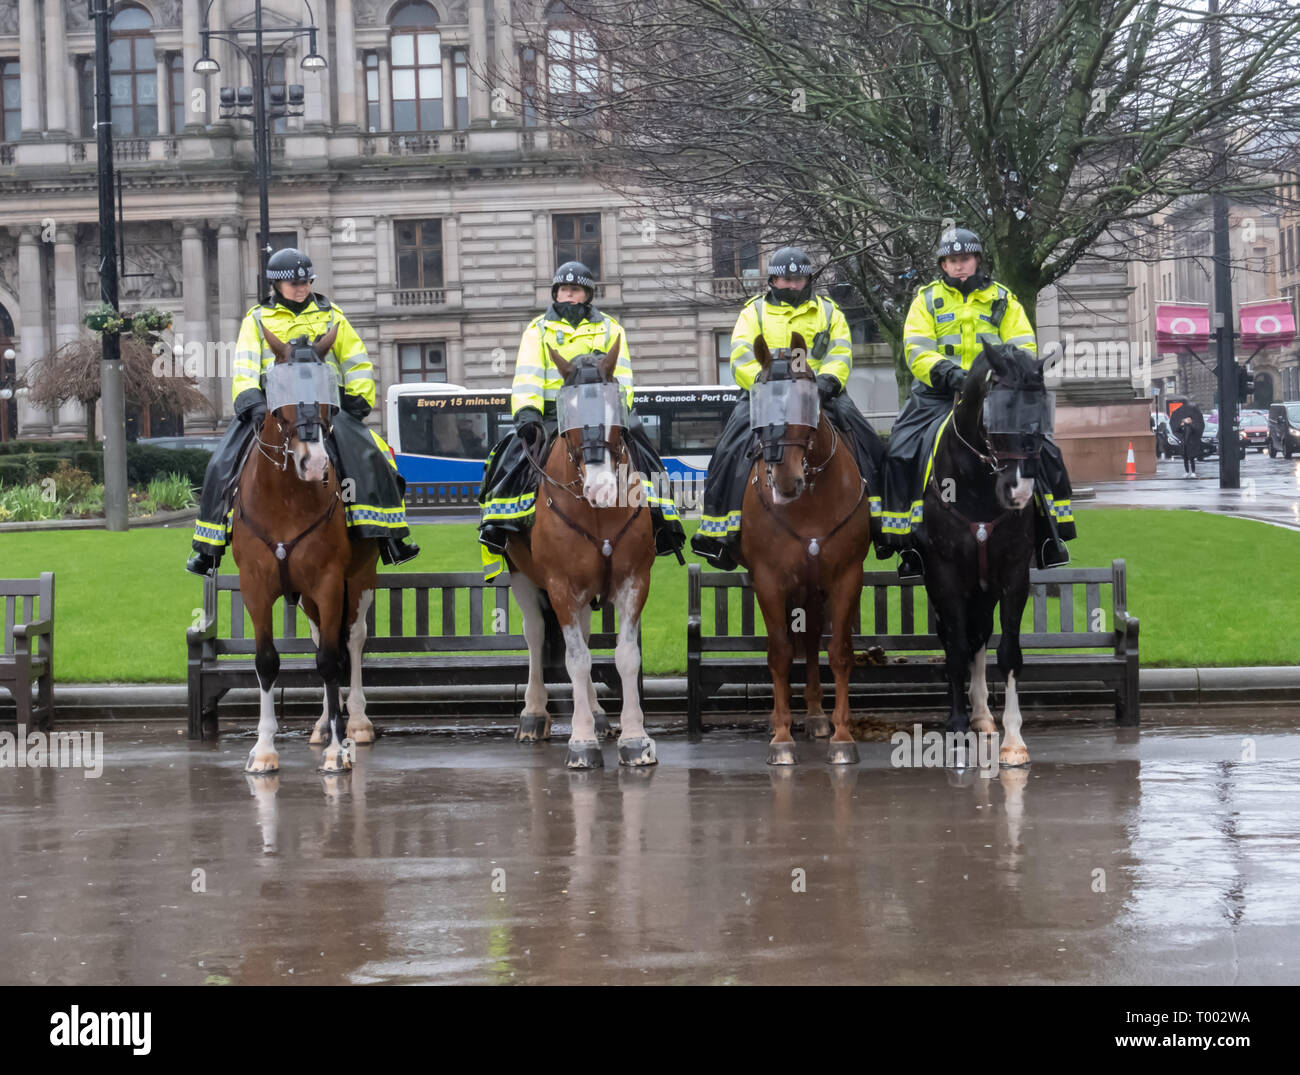 Glasgow, Scotland, UK. 15th March, 2019: Mounted officers from Police Scotland on duty in George Square during the Stand Up To Racism rally. Credit: Skully/Alamy Live News - Stock Image